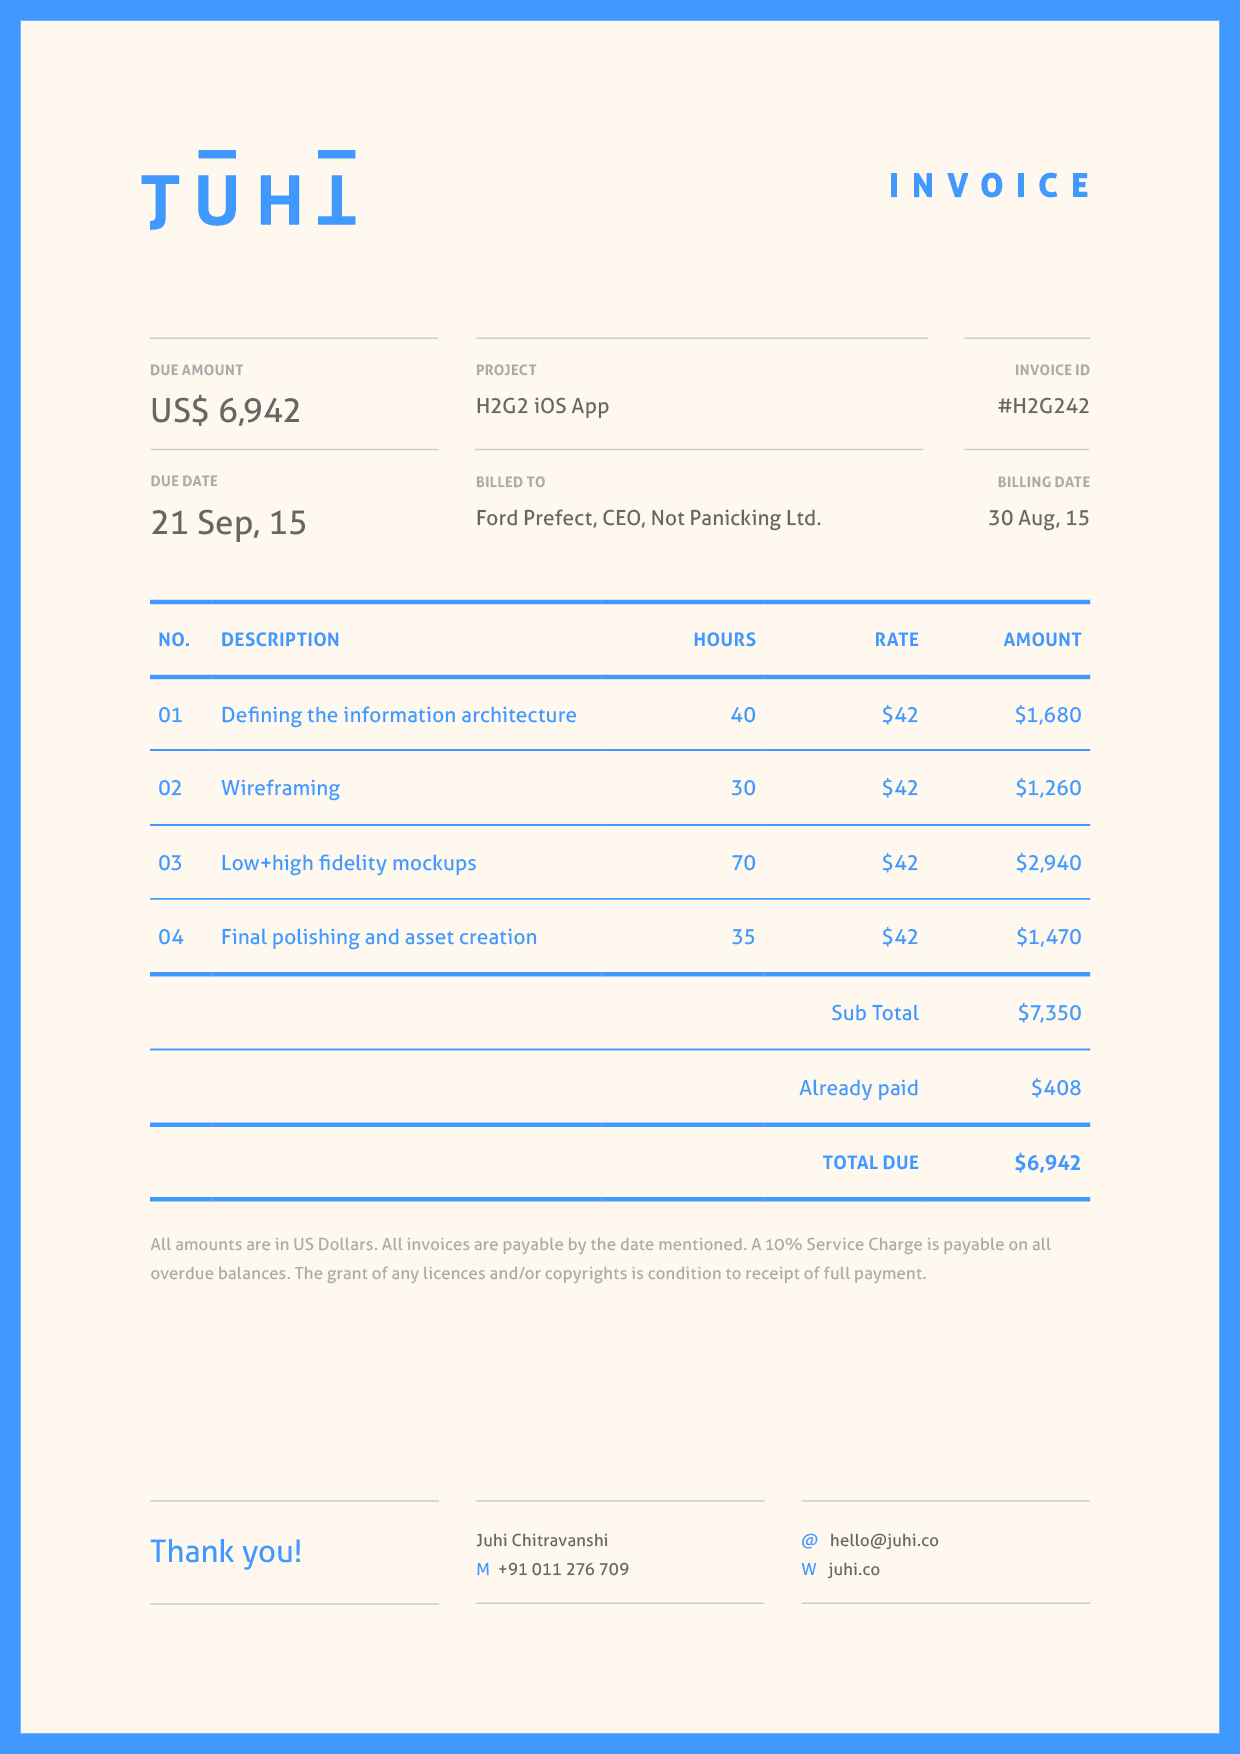 Reliefworkersus  Inspiring Dont Hold Back On Your Invoice  Inspiring Designs  With Interesting Invoice By Juhi Chitravanshi Follow With Beautiful Template For Invoice Uk Also Samples Of Invoice In Addition Receipts And Invoices And Free Software For Billing And Invoicing As Well As Samples Of Proforma Invoice Additionally What Invoice From Inspirationfeedcom With Reliefworkersus  Interesting Dont Hold Back On Your Invoice  Inspiring Designs  With Beautiful Invoice By Juhi Chitravanshi Follow And Inspiring Template For Invoice Uk Also Samples Of Invoice In Addition Receipts And Invoices From Inspirationfeedcom